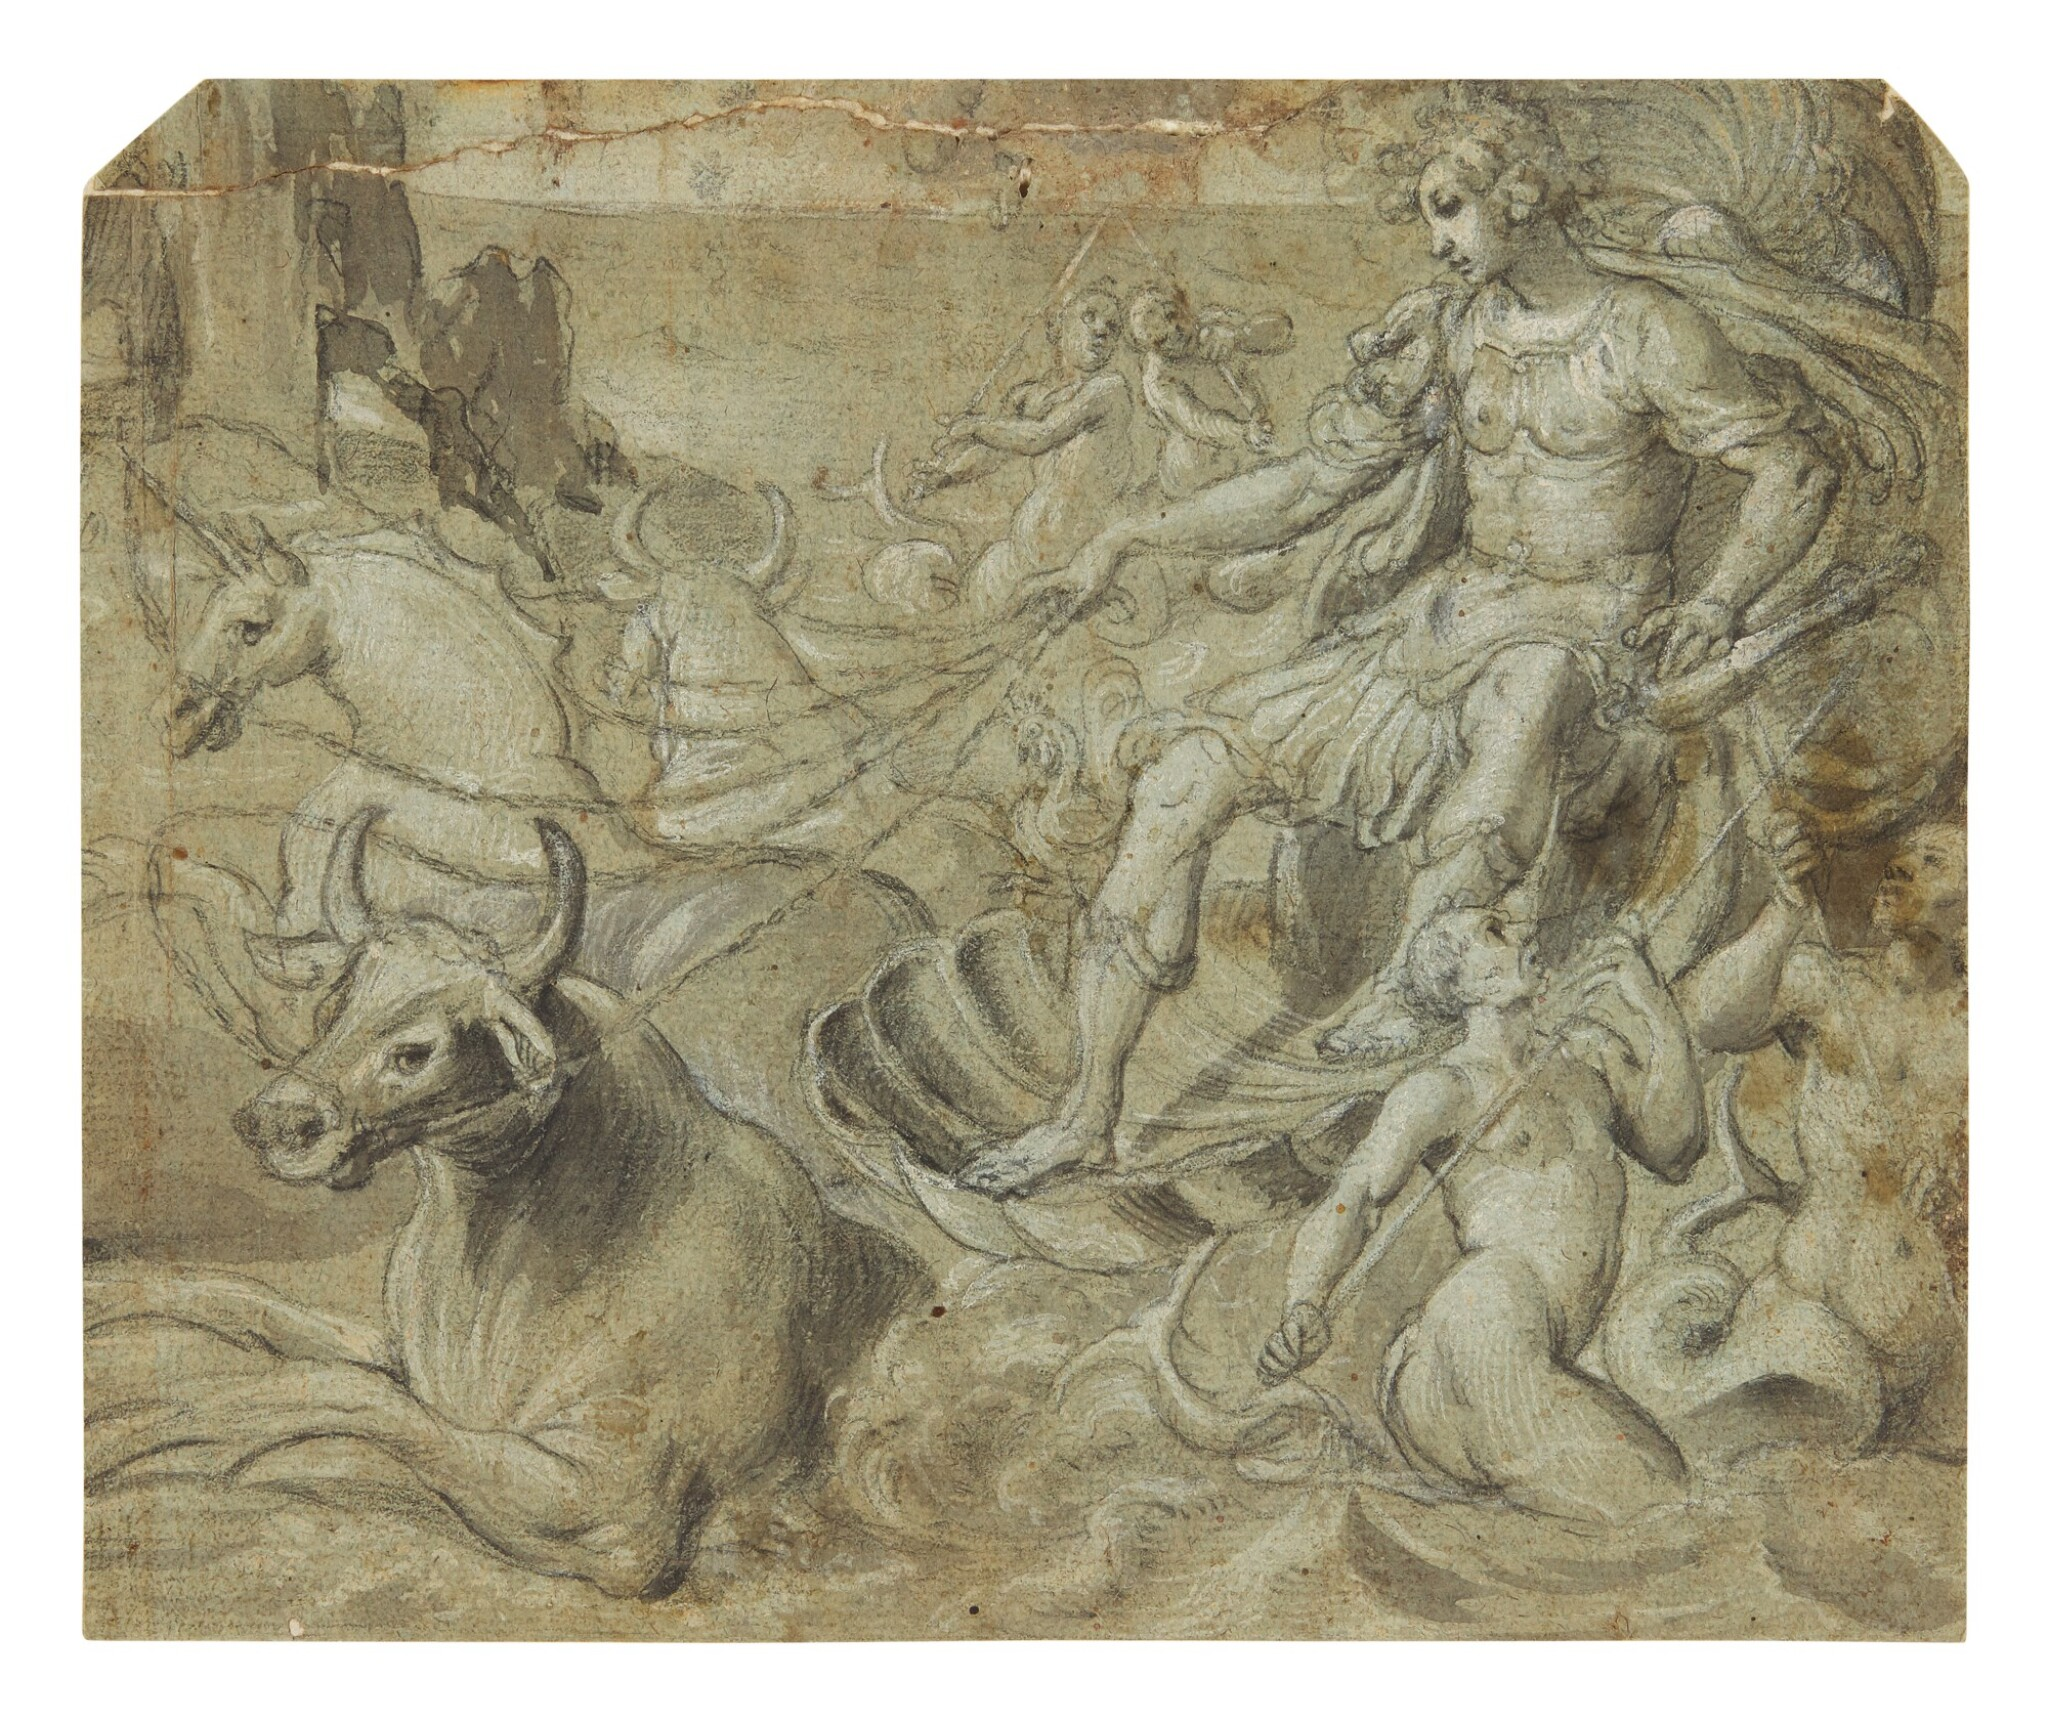 View full screen - View 1 of Lot 593. FLORENTINE SCHOOL, CIRCA 1580 | A MYTHOLOGICAL FIGURE RIDING A SHELL-CHARIOT DRAWN BY BULLS AND A UNICORN, WITH TRITONS PLAYING IN THE WAVES.